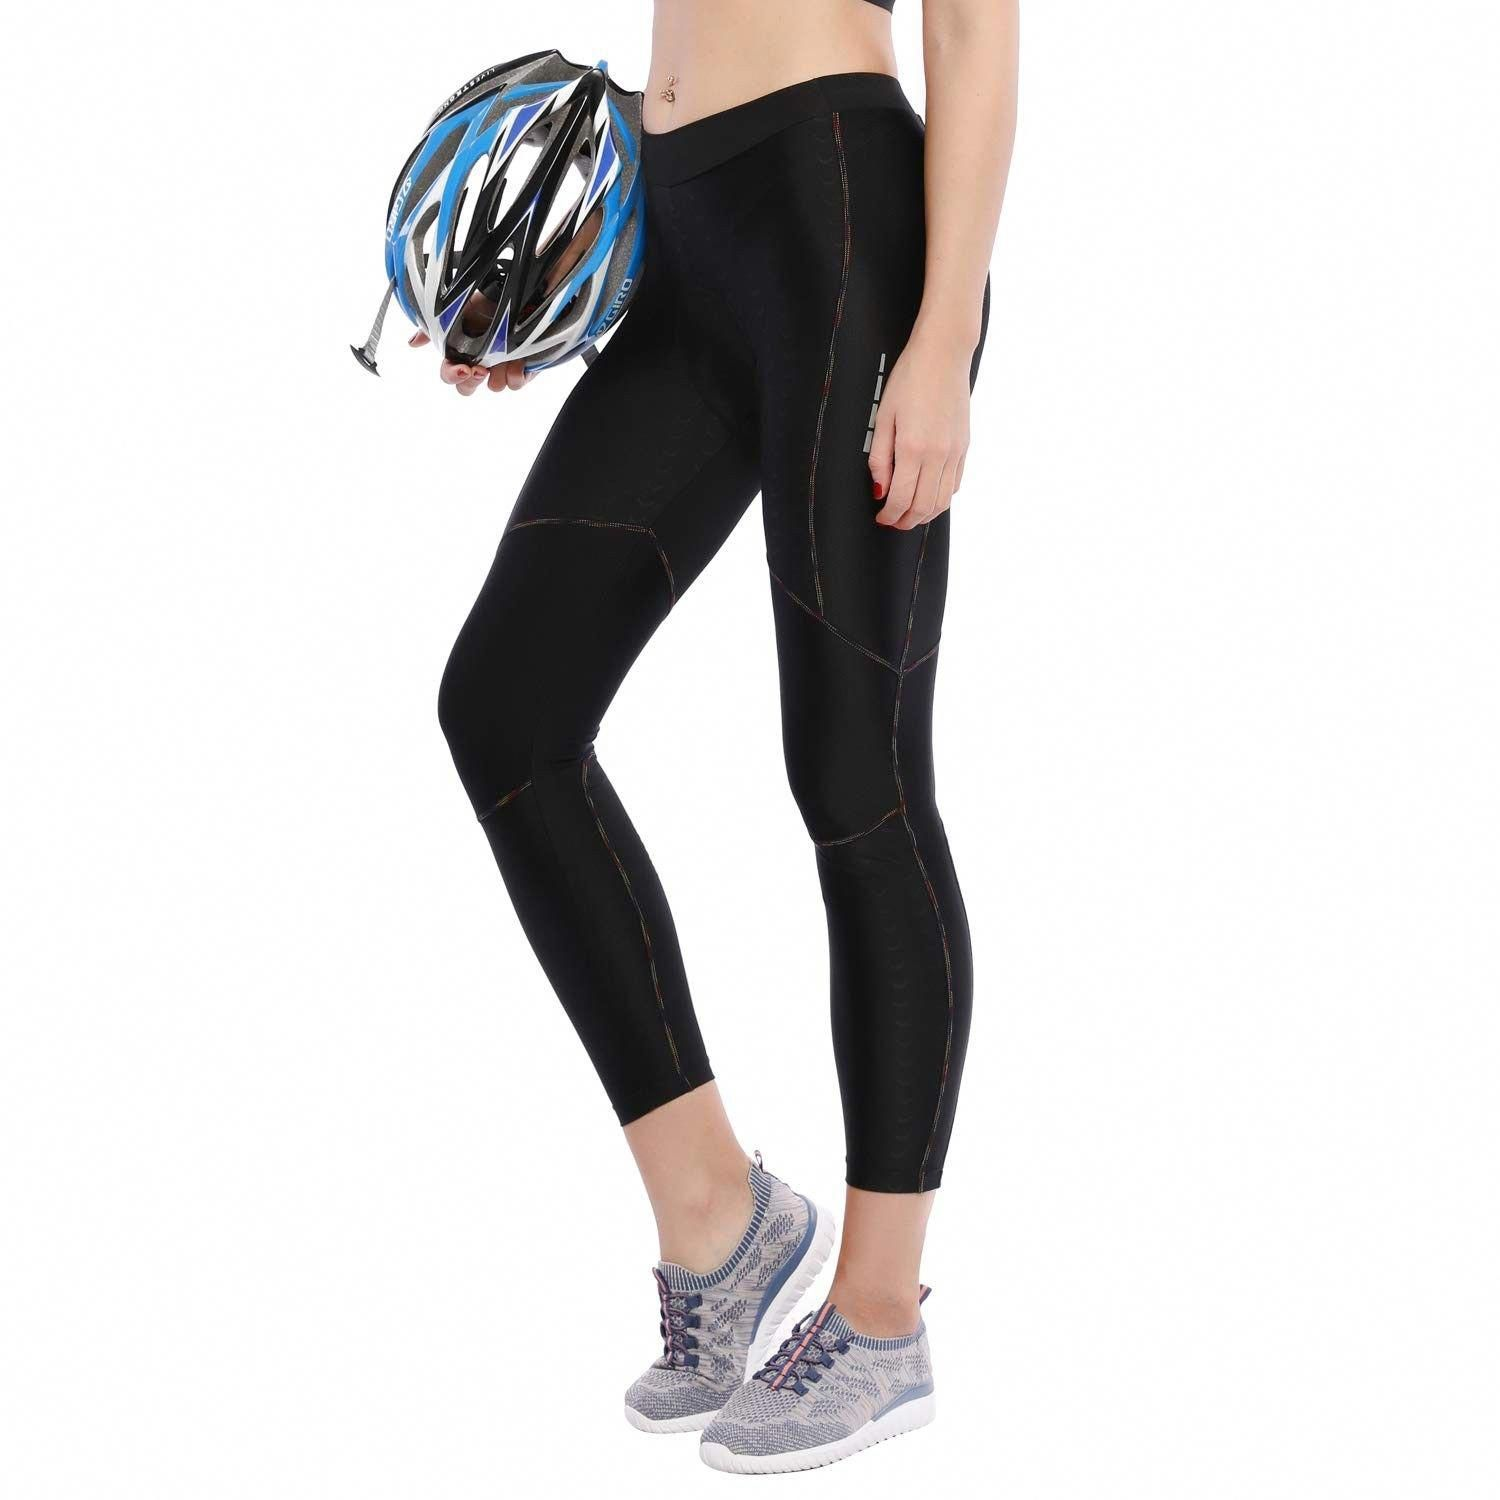 Women S Bike Pants Cycling Tights Padded 4d Bicycle Long Legging Breathable Quick Dry Black Cb18i2cn7no Outdoor In 2020 Bike Pants Cycling Tights Long Leggings